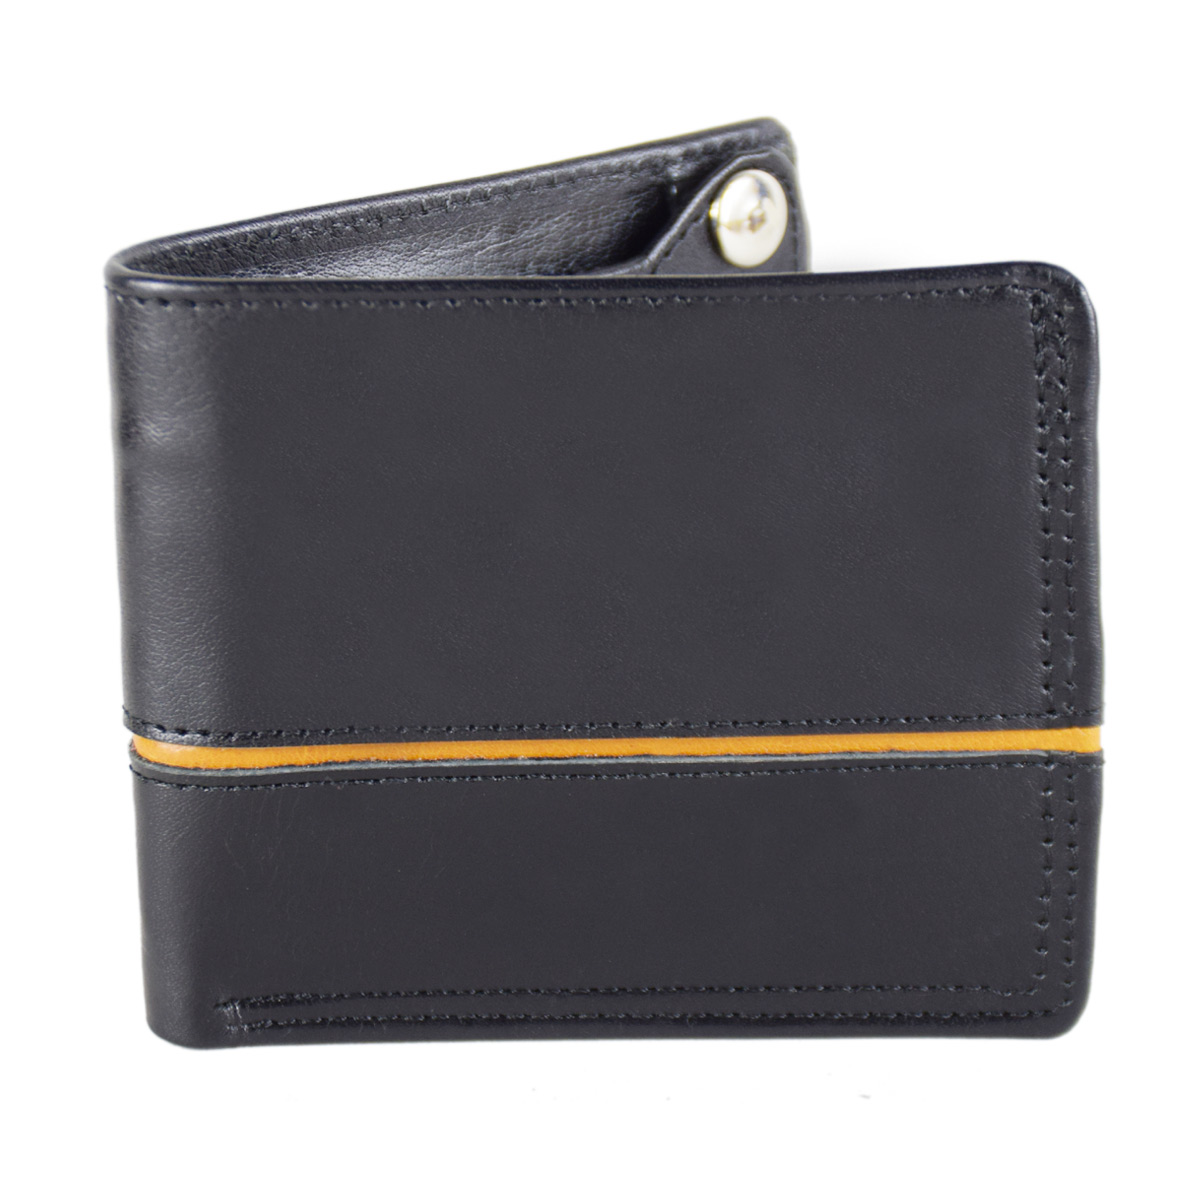 BLACK WALLET WITH YELLOW LINE